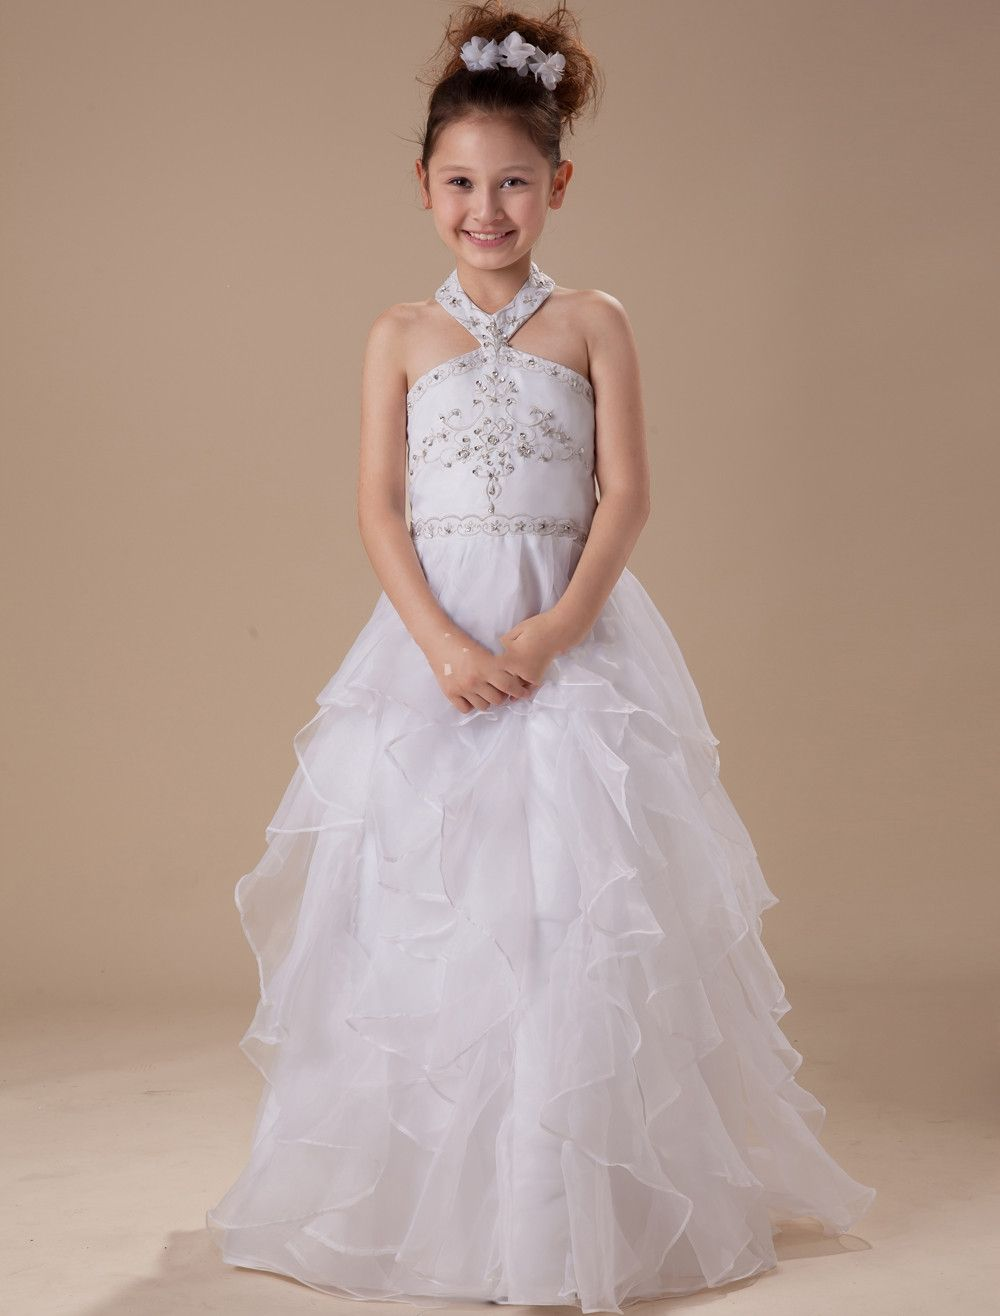 Hater Organza Satin White Kid Dresses For Wedding